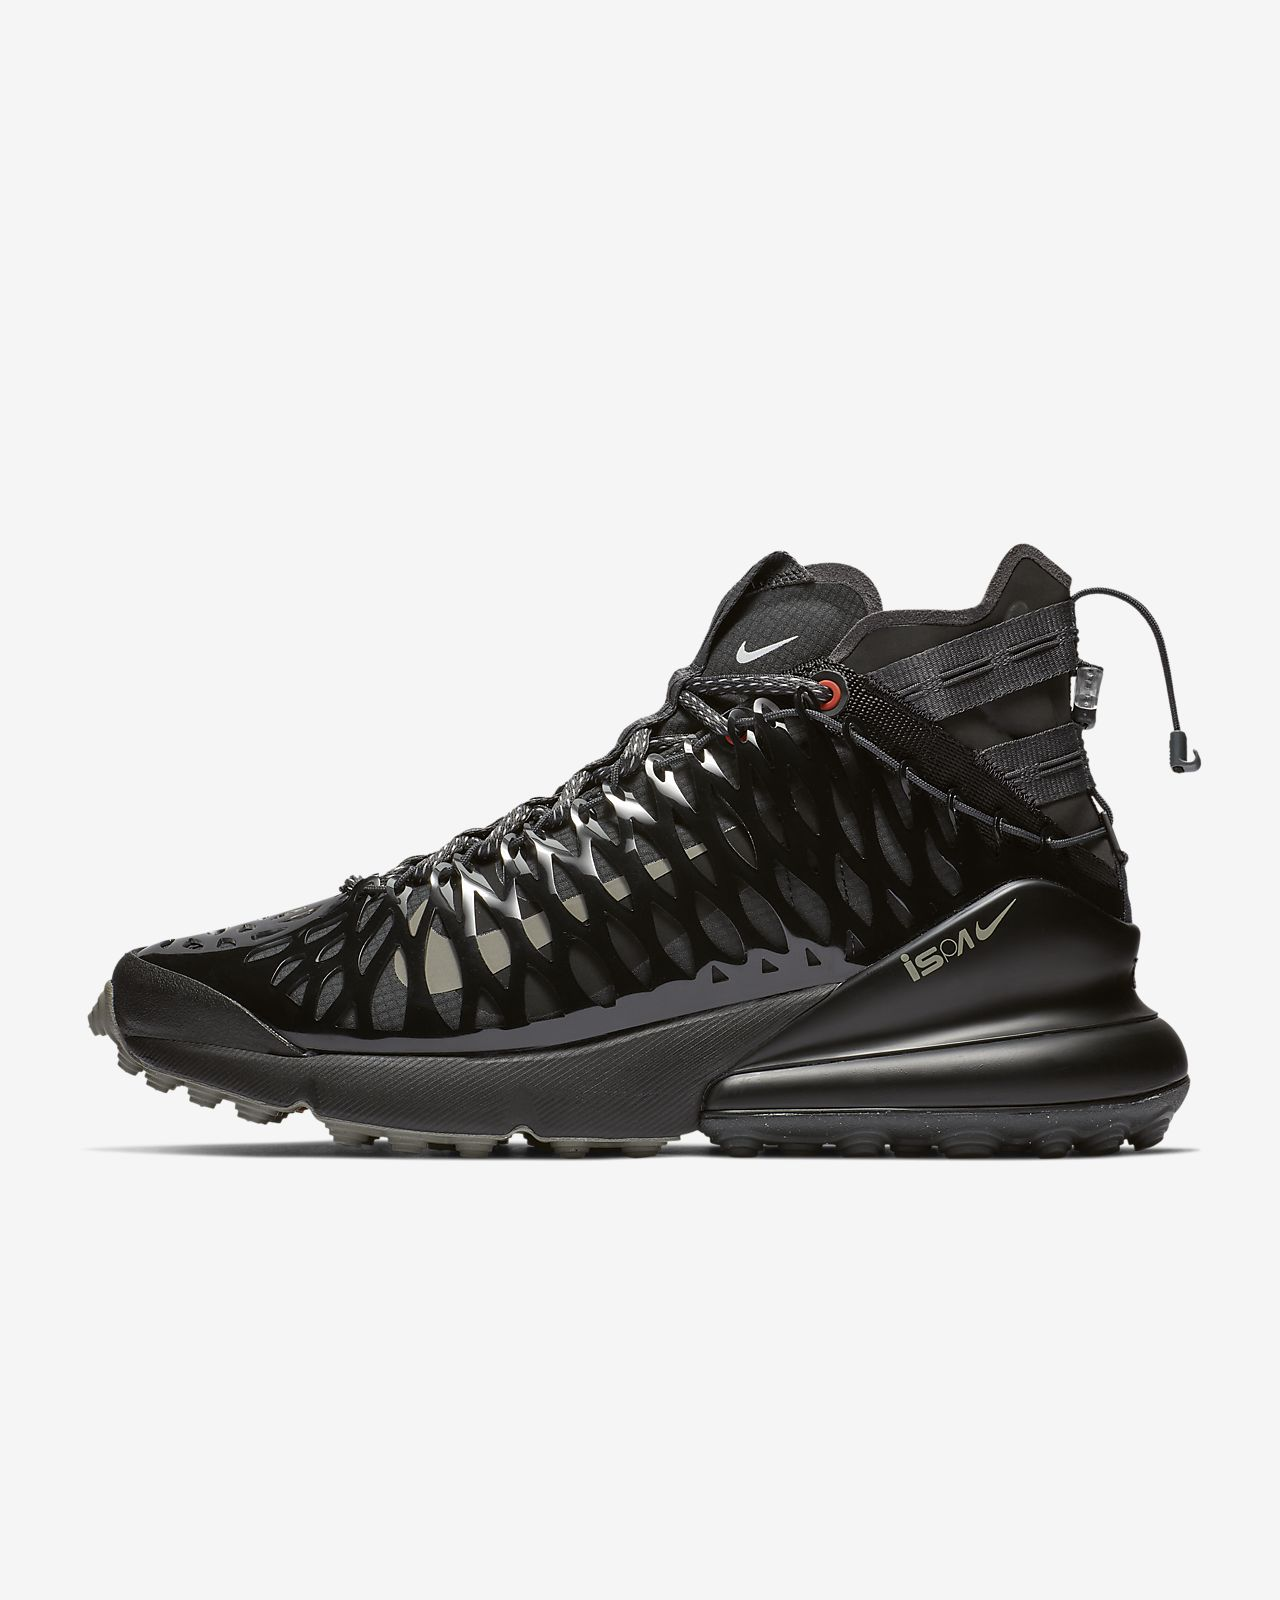 Chaussure Nike ISPA Air Max 270 pour Homme